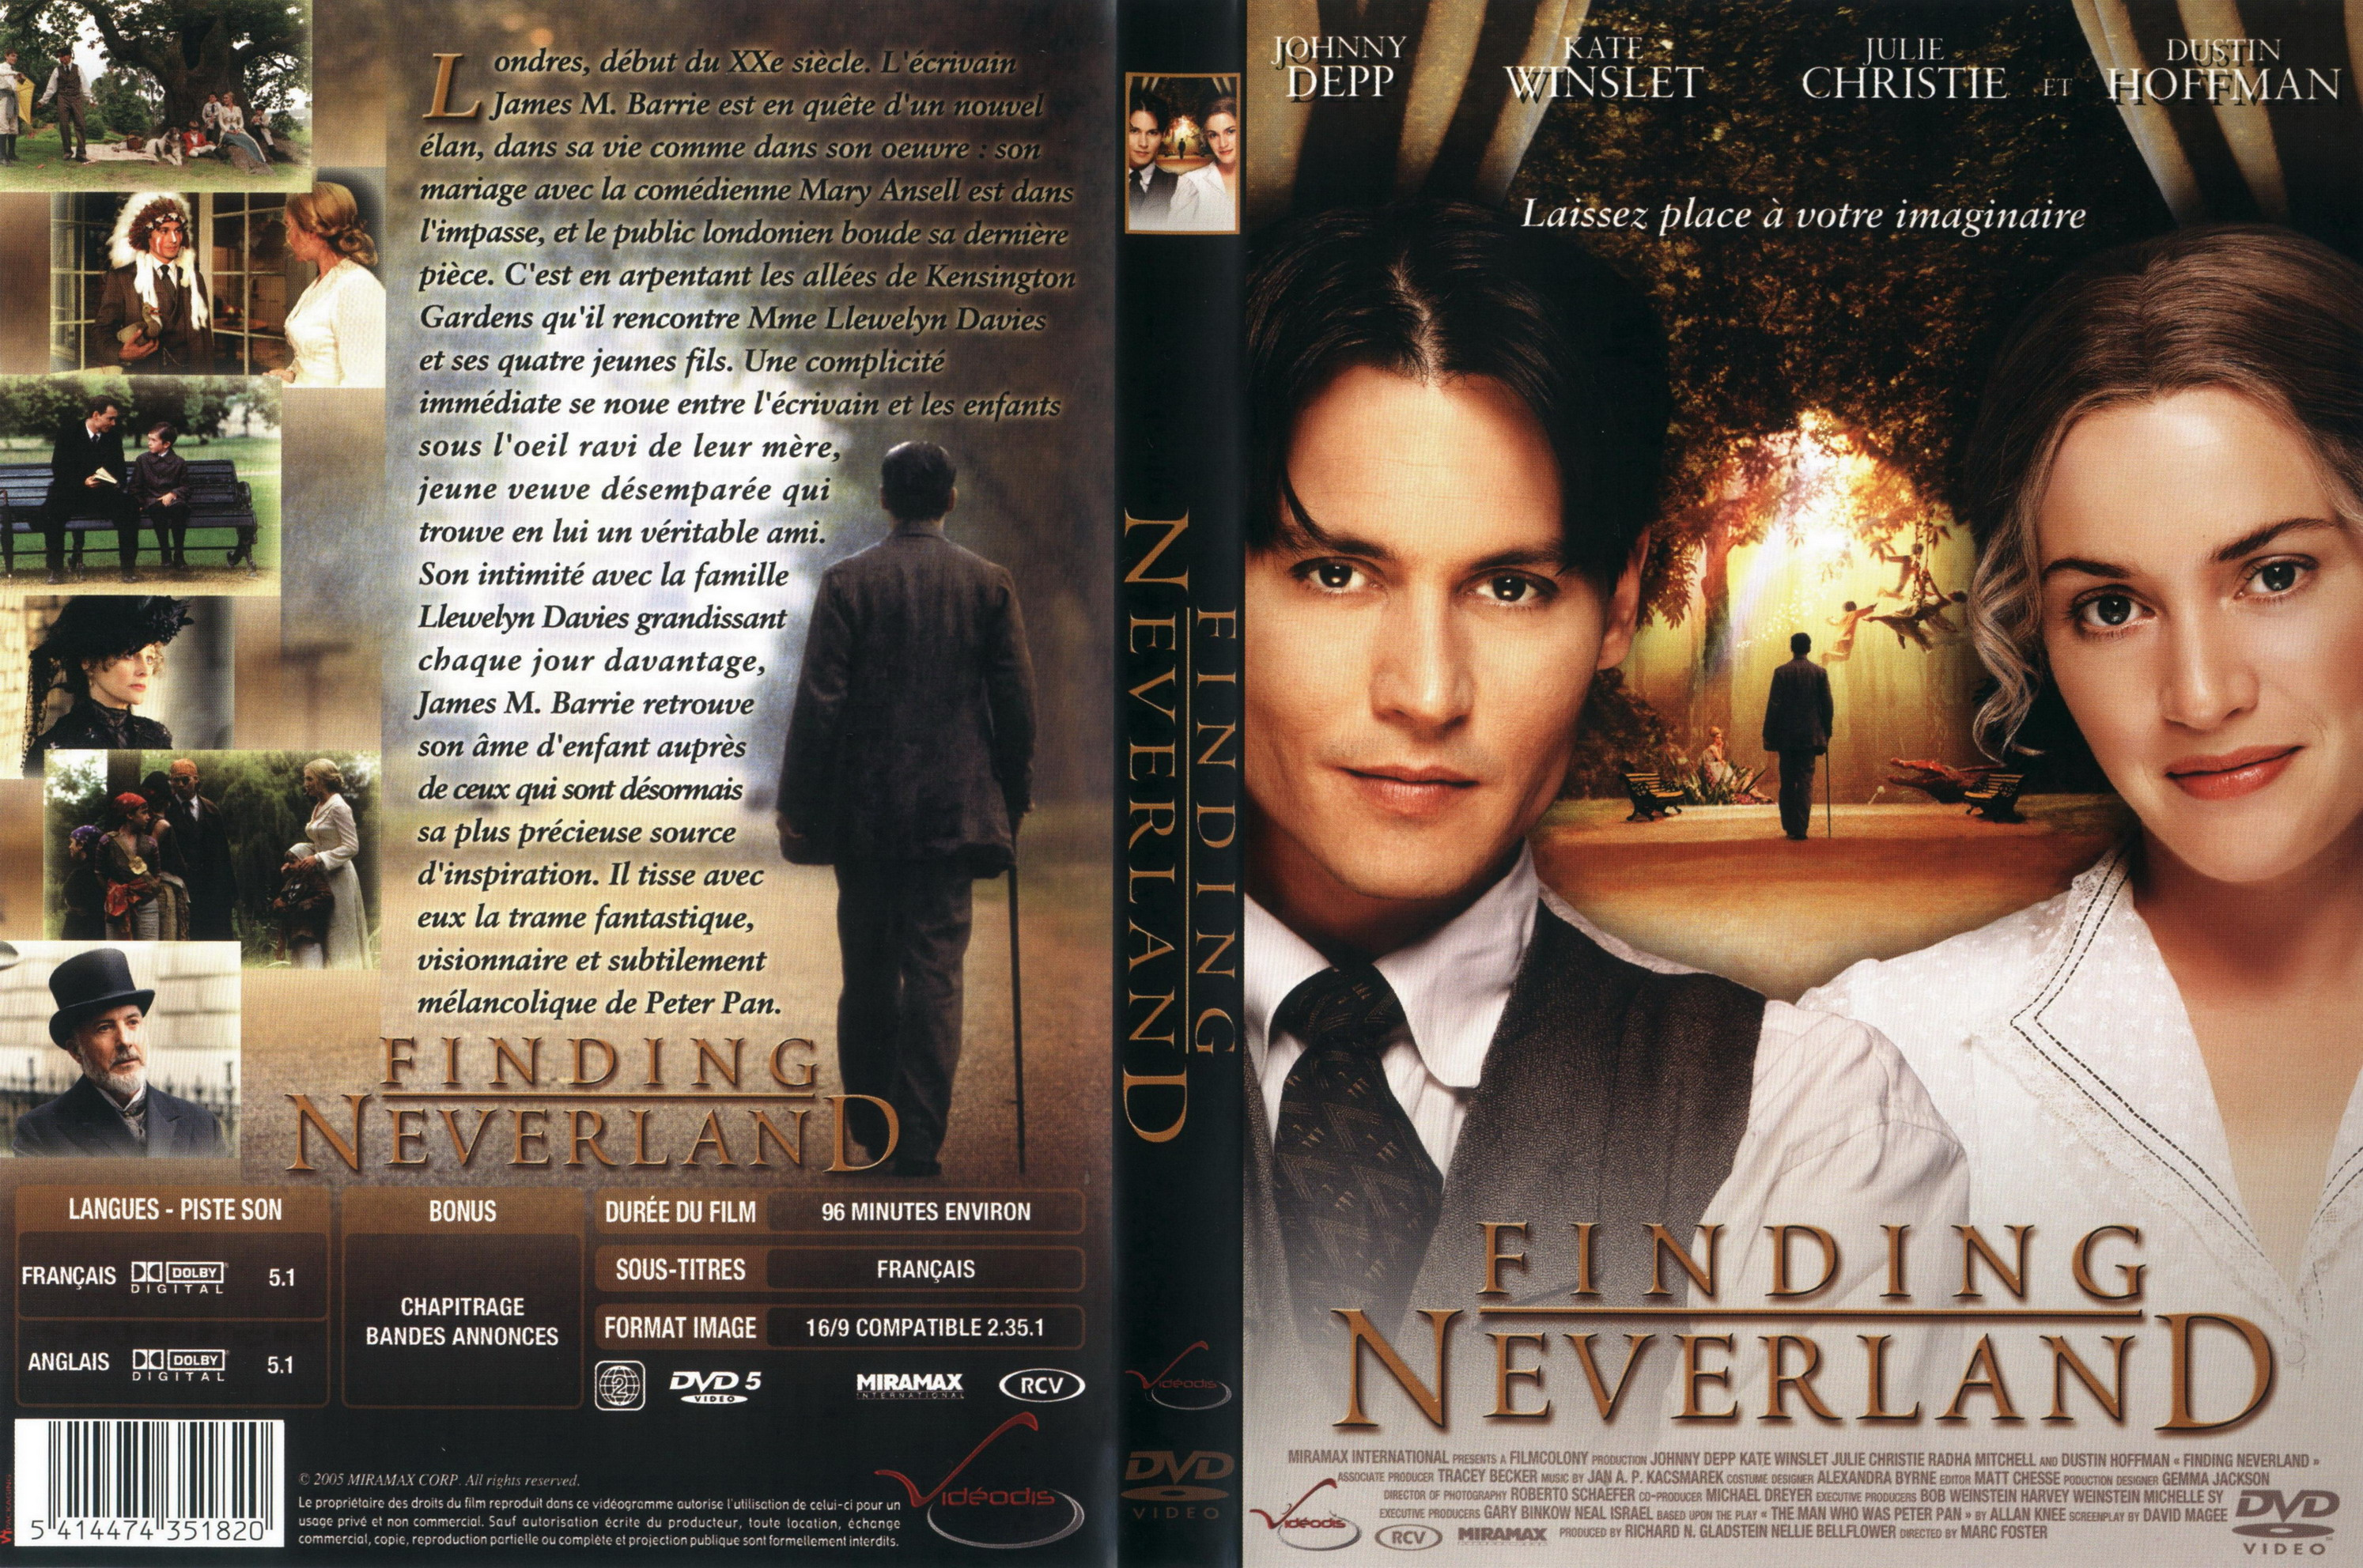 finding neverland essay There are essays such as dave barry's red, white and beer and david gate's finding neverland that are prime examples of the glorification of society in the press and widespread through the media in dave barry's patriotic essay based around the beer commercials that are spread through all of america, red, white and beer, barry fuses the.